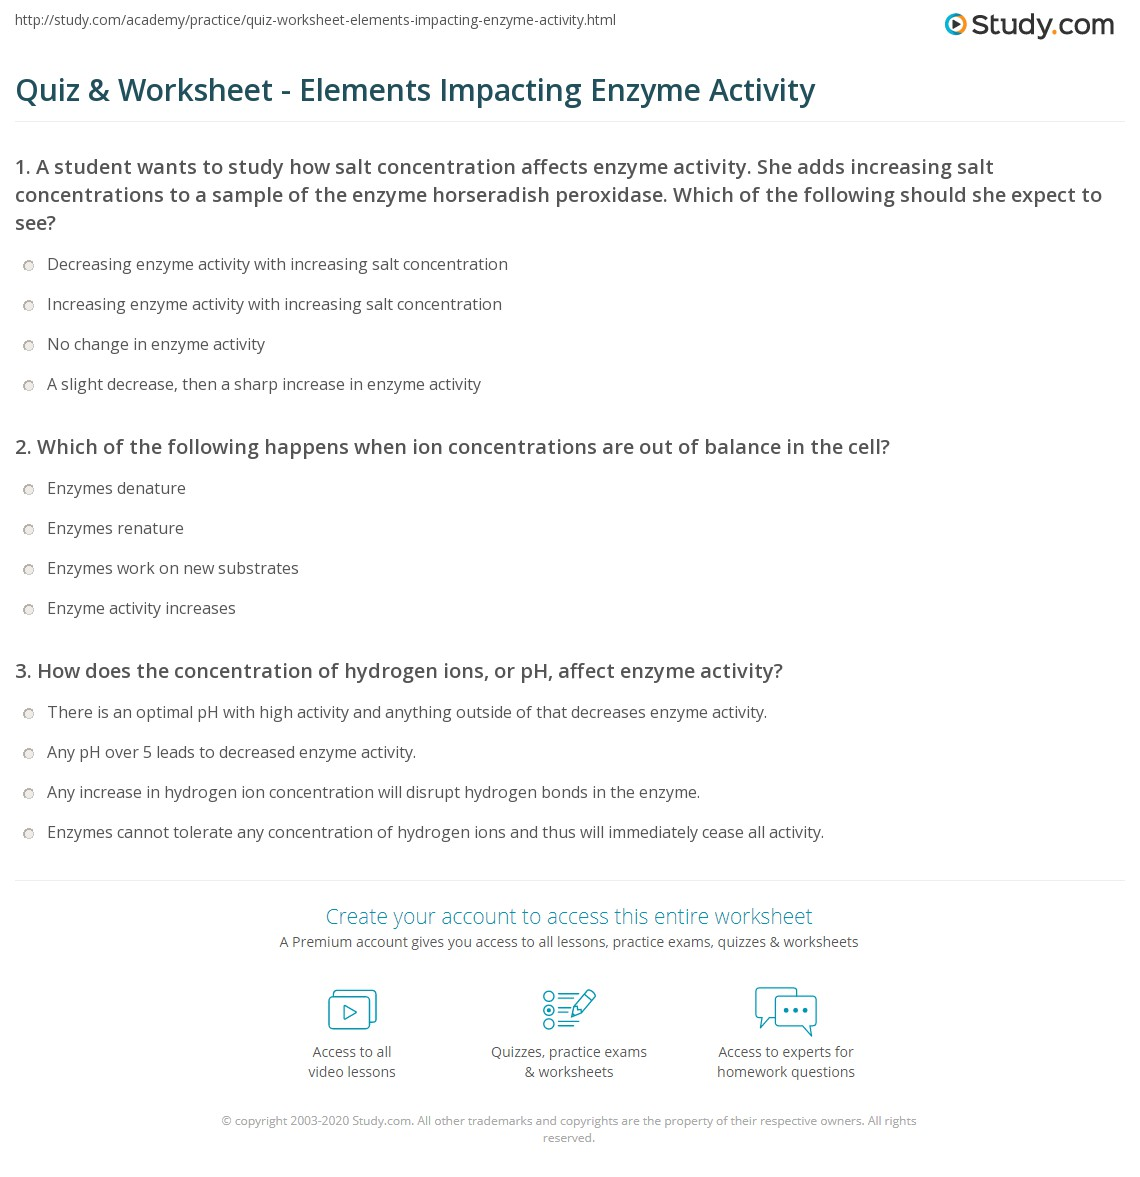 Enzymes Substrates Worksheet